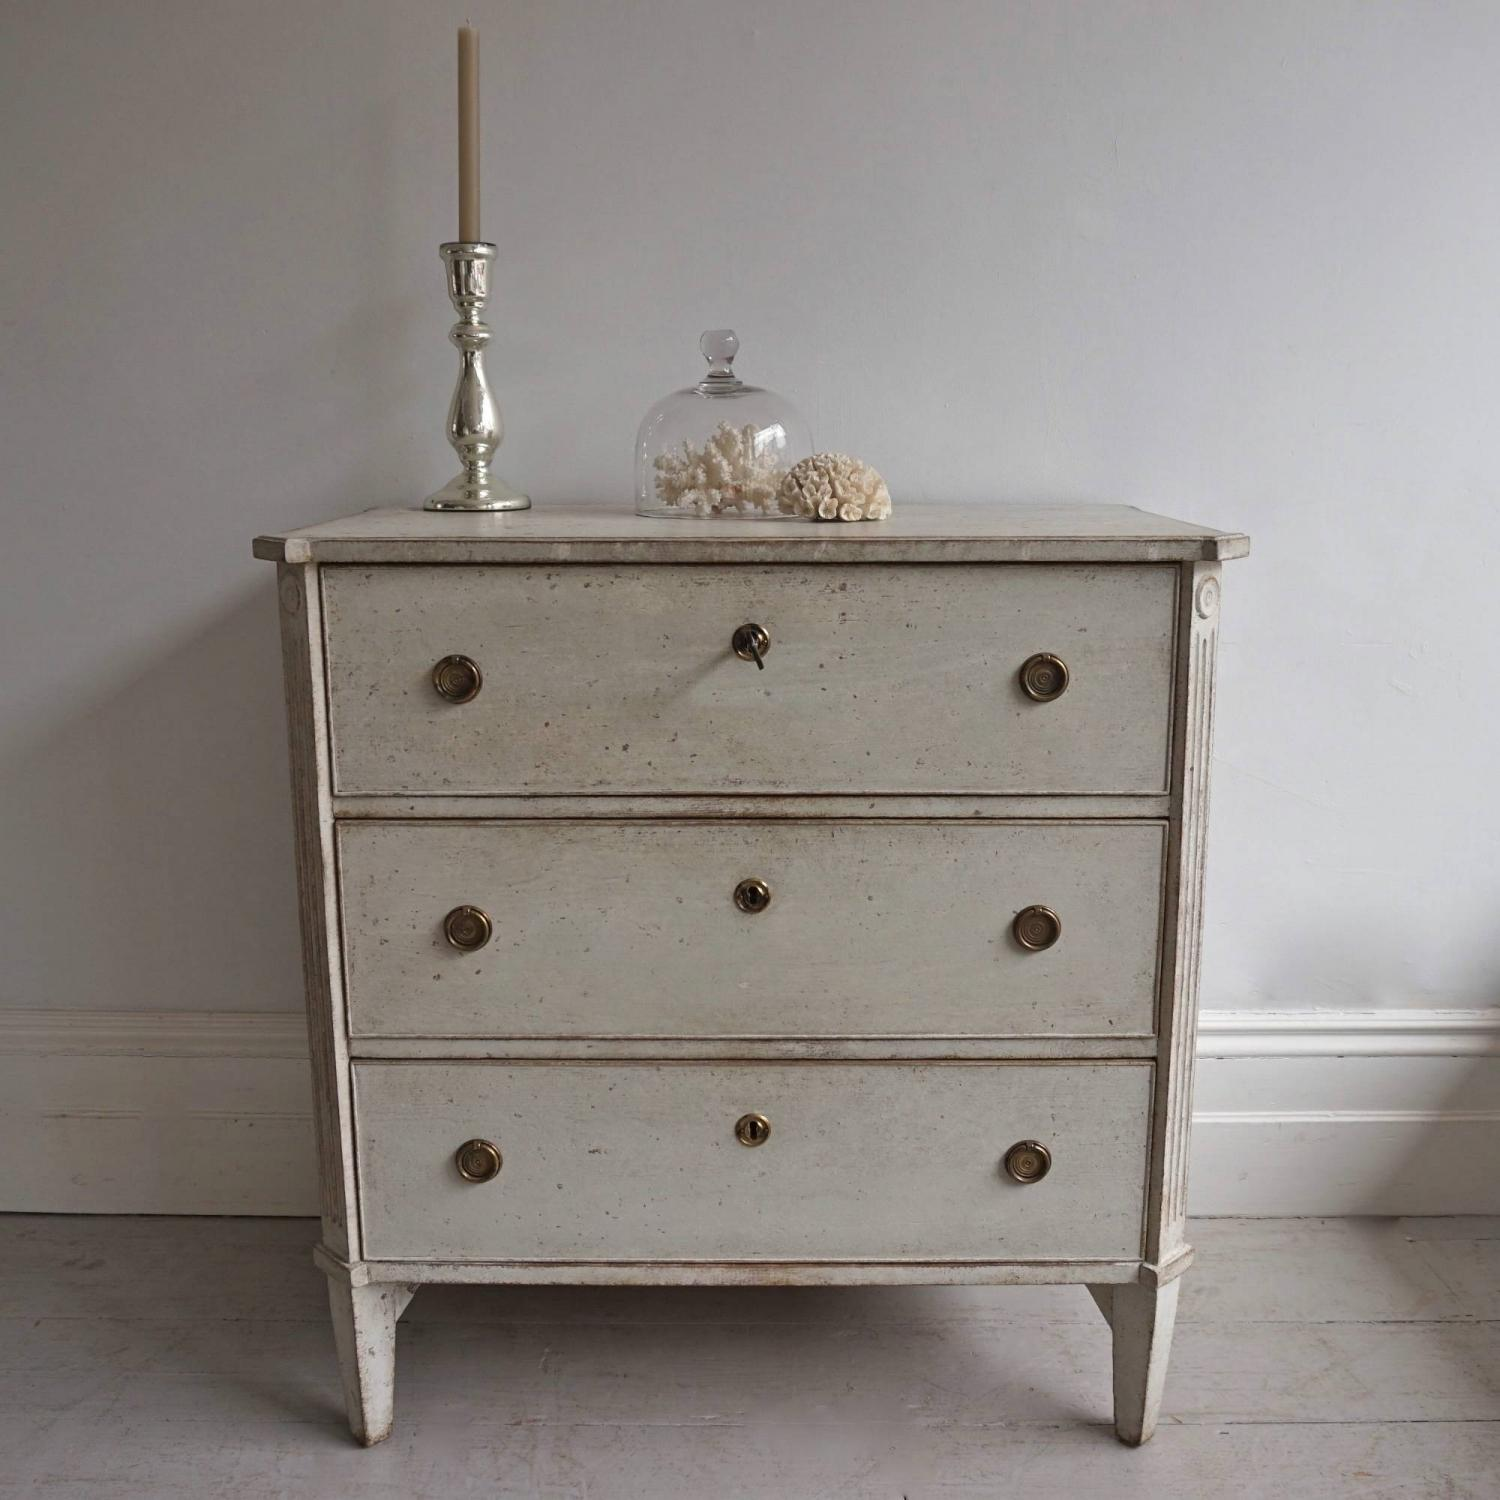 19TH CENTURY SWEDISH GUSTAVIAN STYLE CHEST